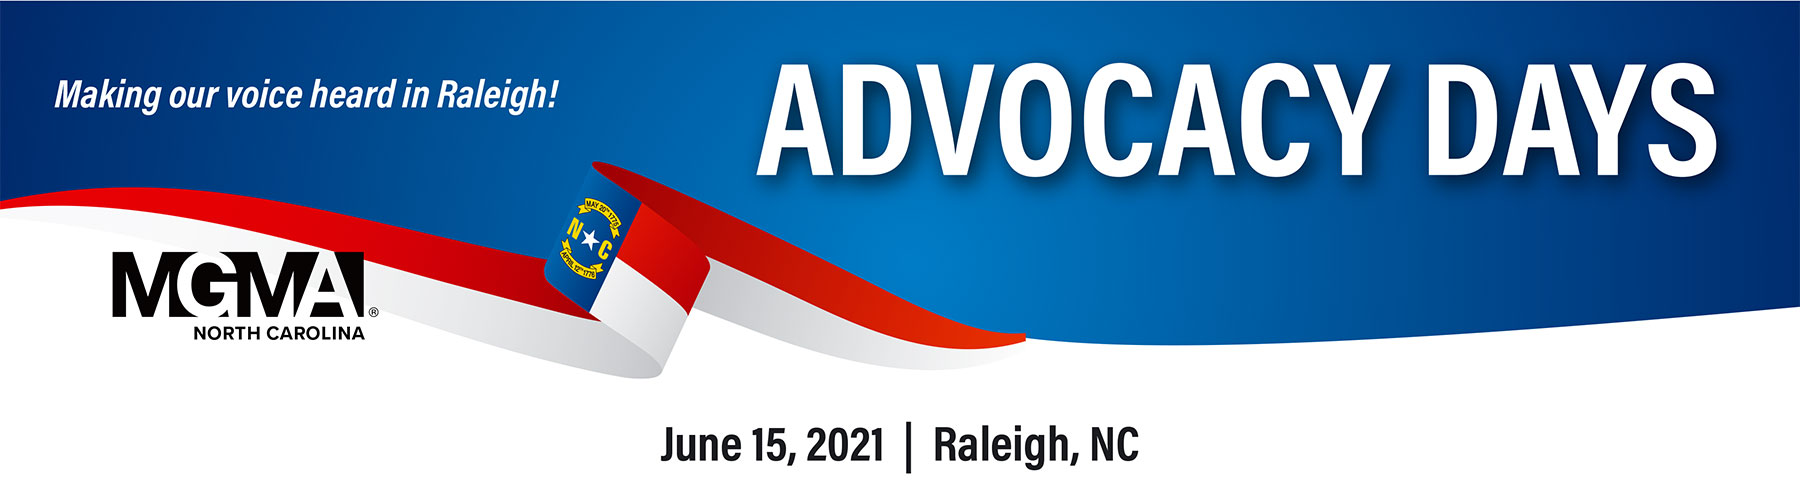 2021 Advocacy Days Save the Date